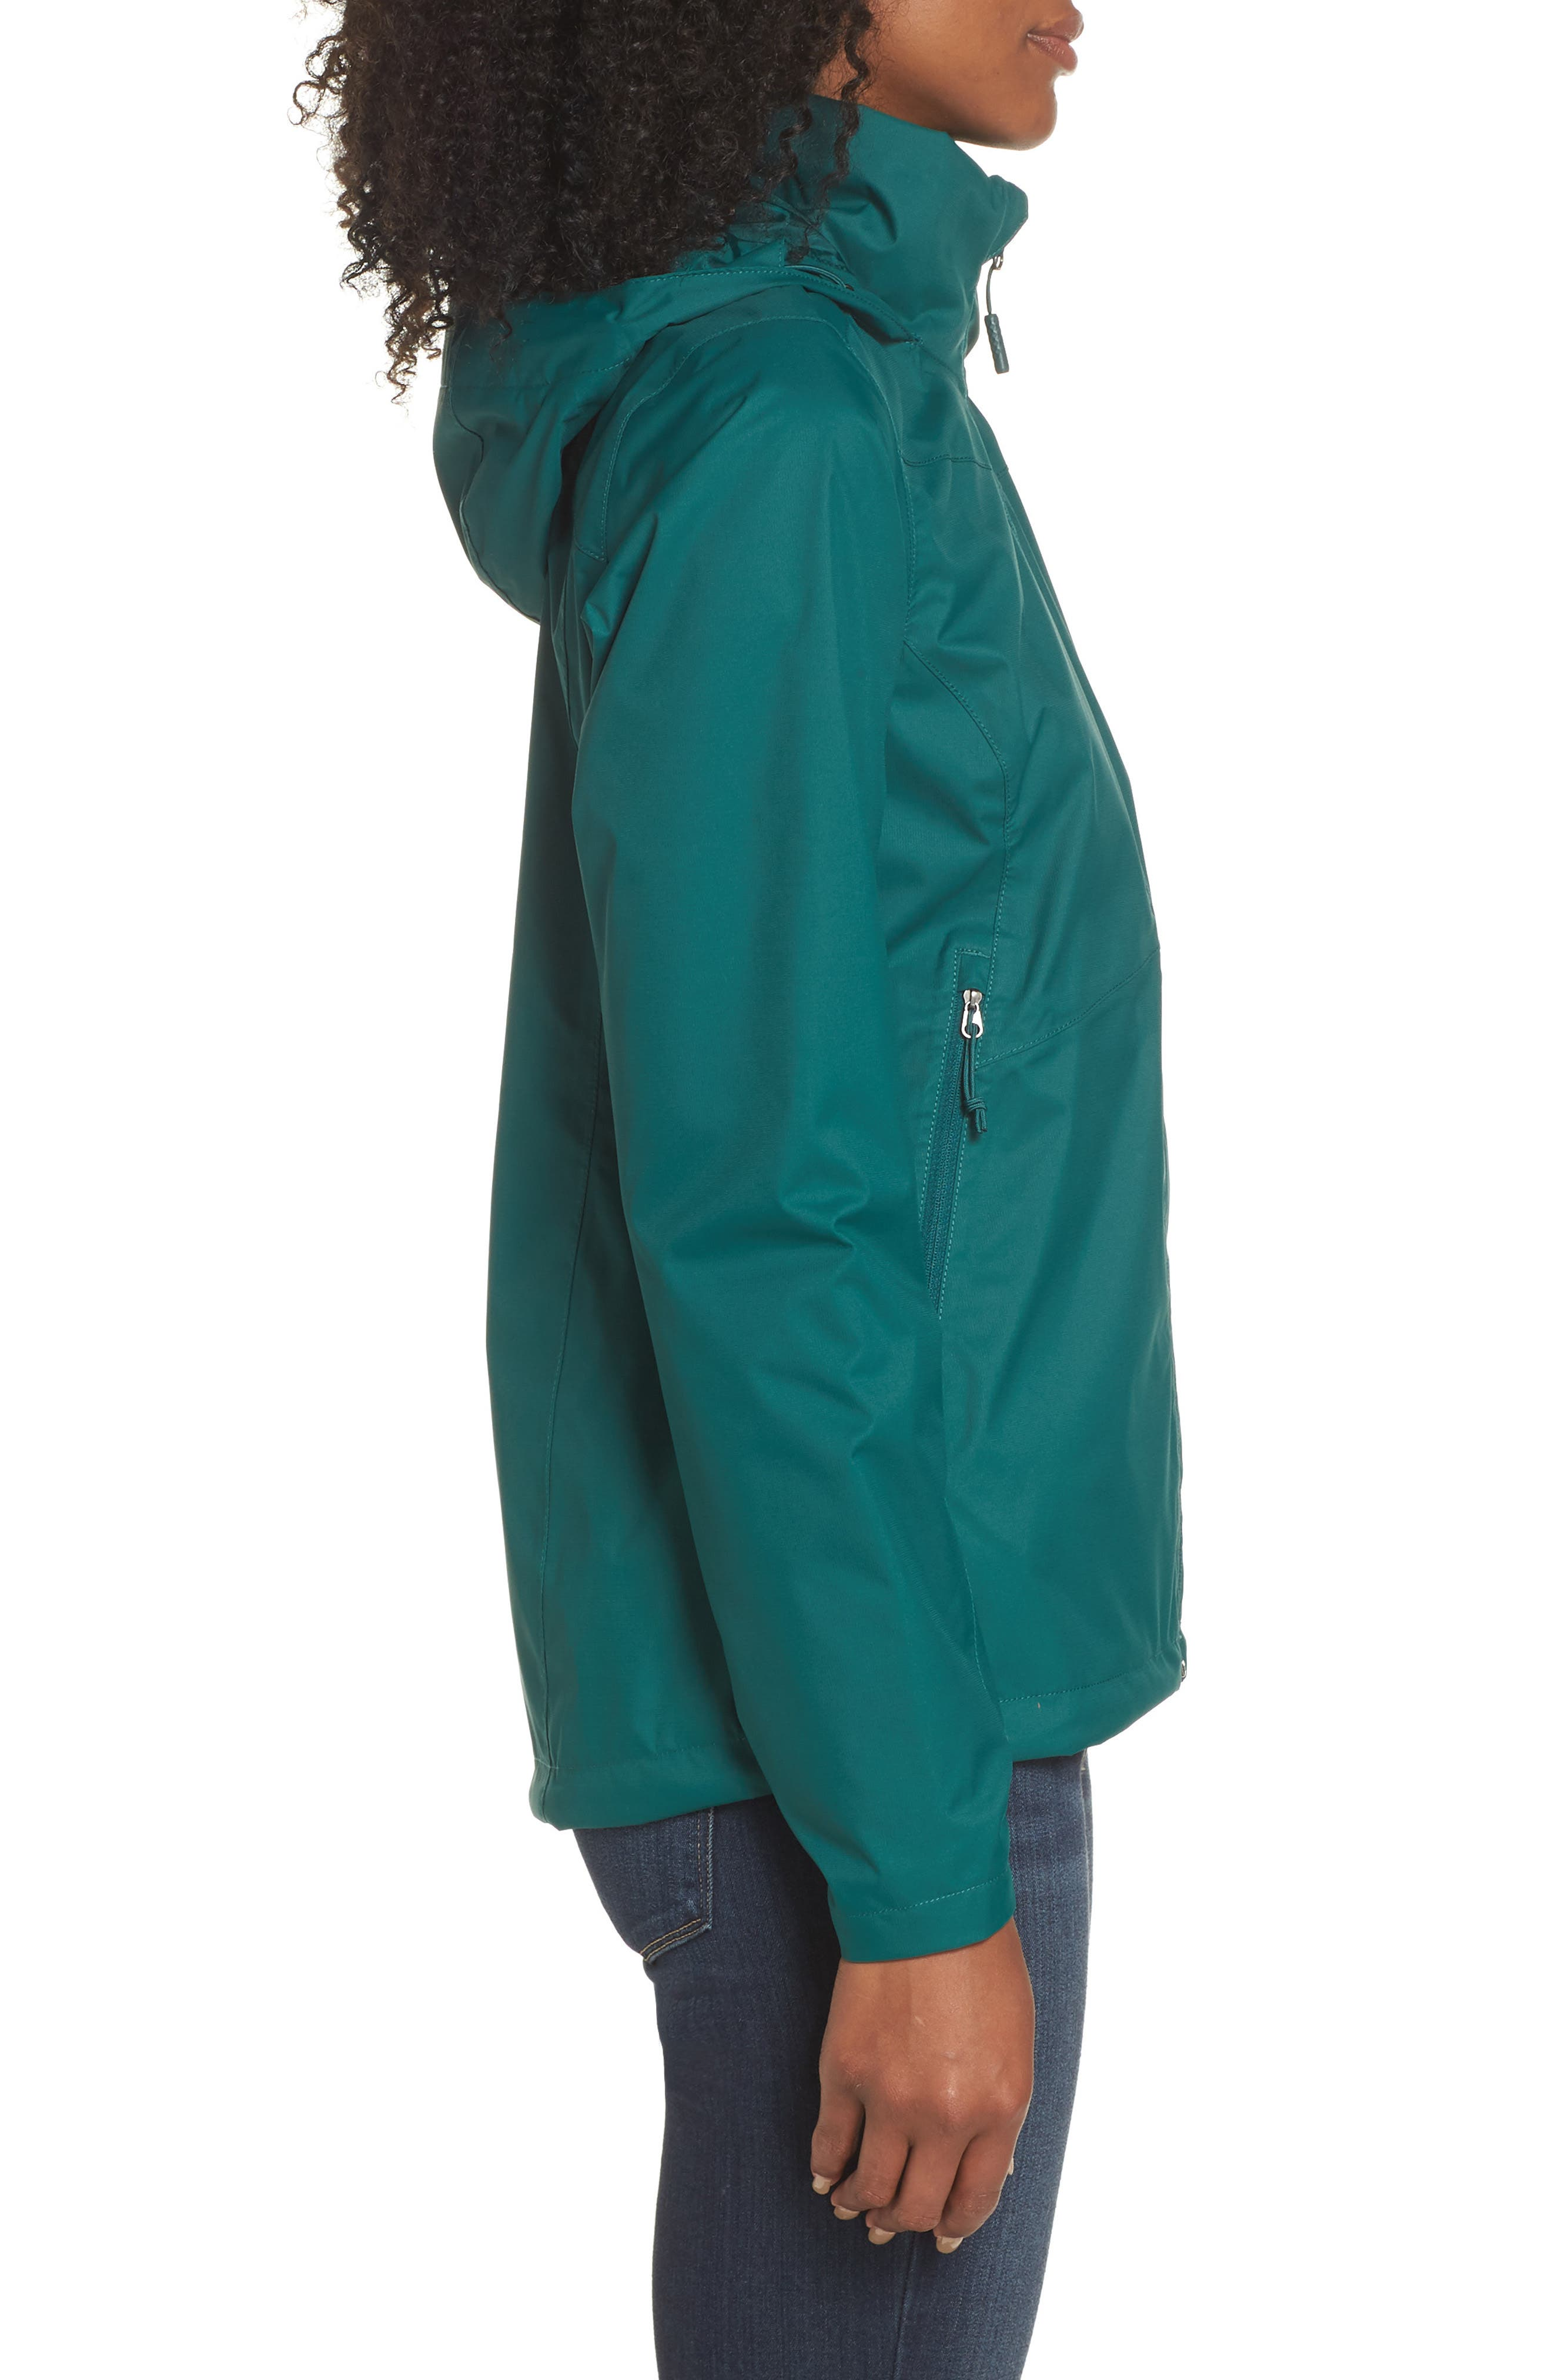 THE NORTH FACE, Resolve Plus Waterproof Jacket, Alternate thumbnail 4, color, 301